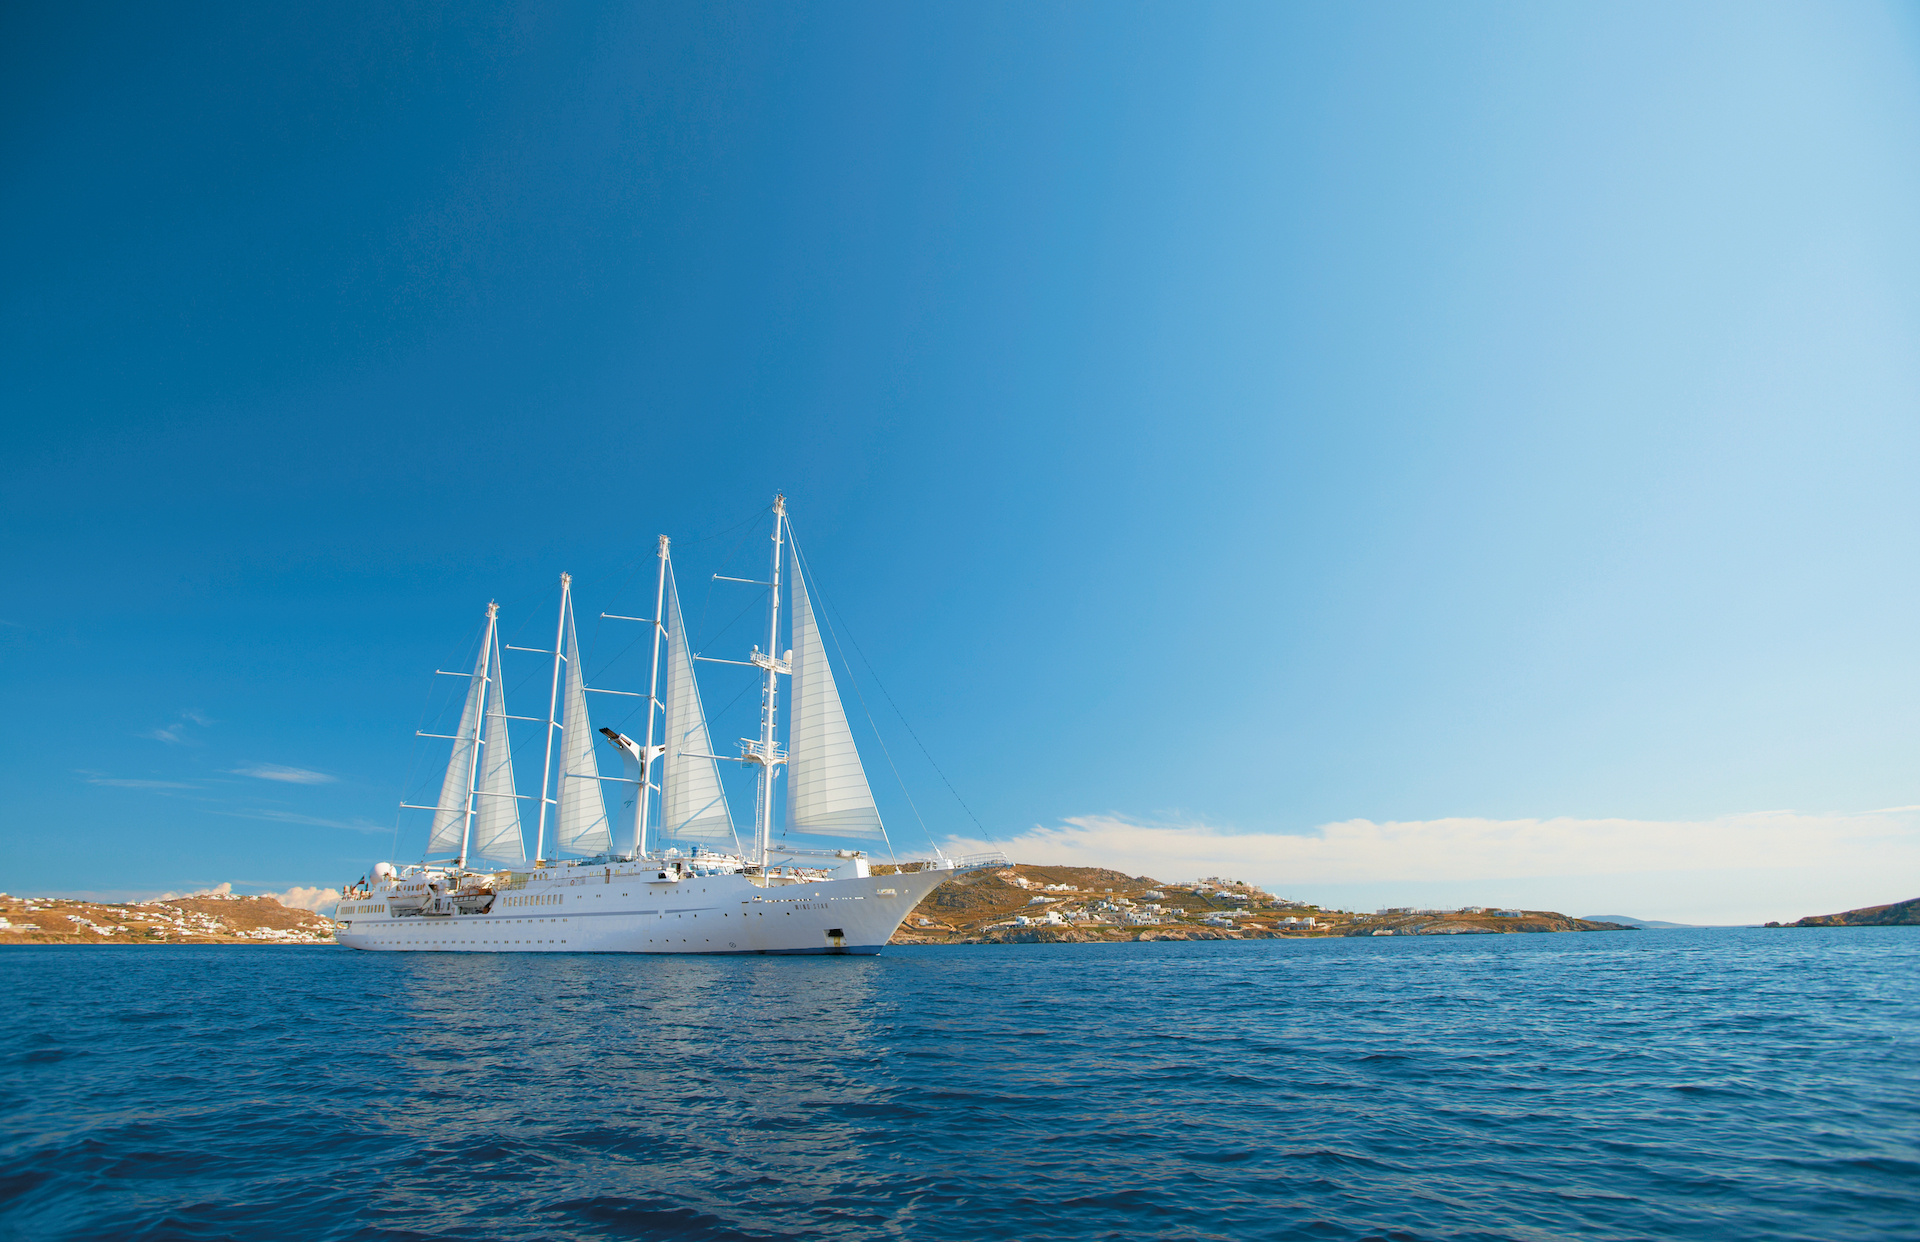 Eager to feel the wind against your face once again? Windstar recommences cruises this month with an exciting Greek Isles itinerary.